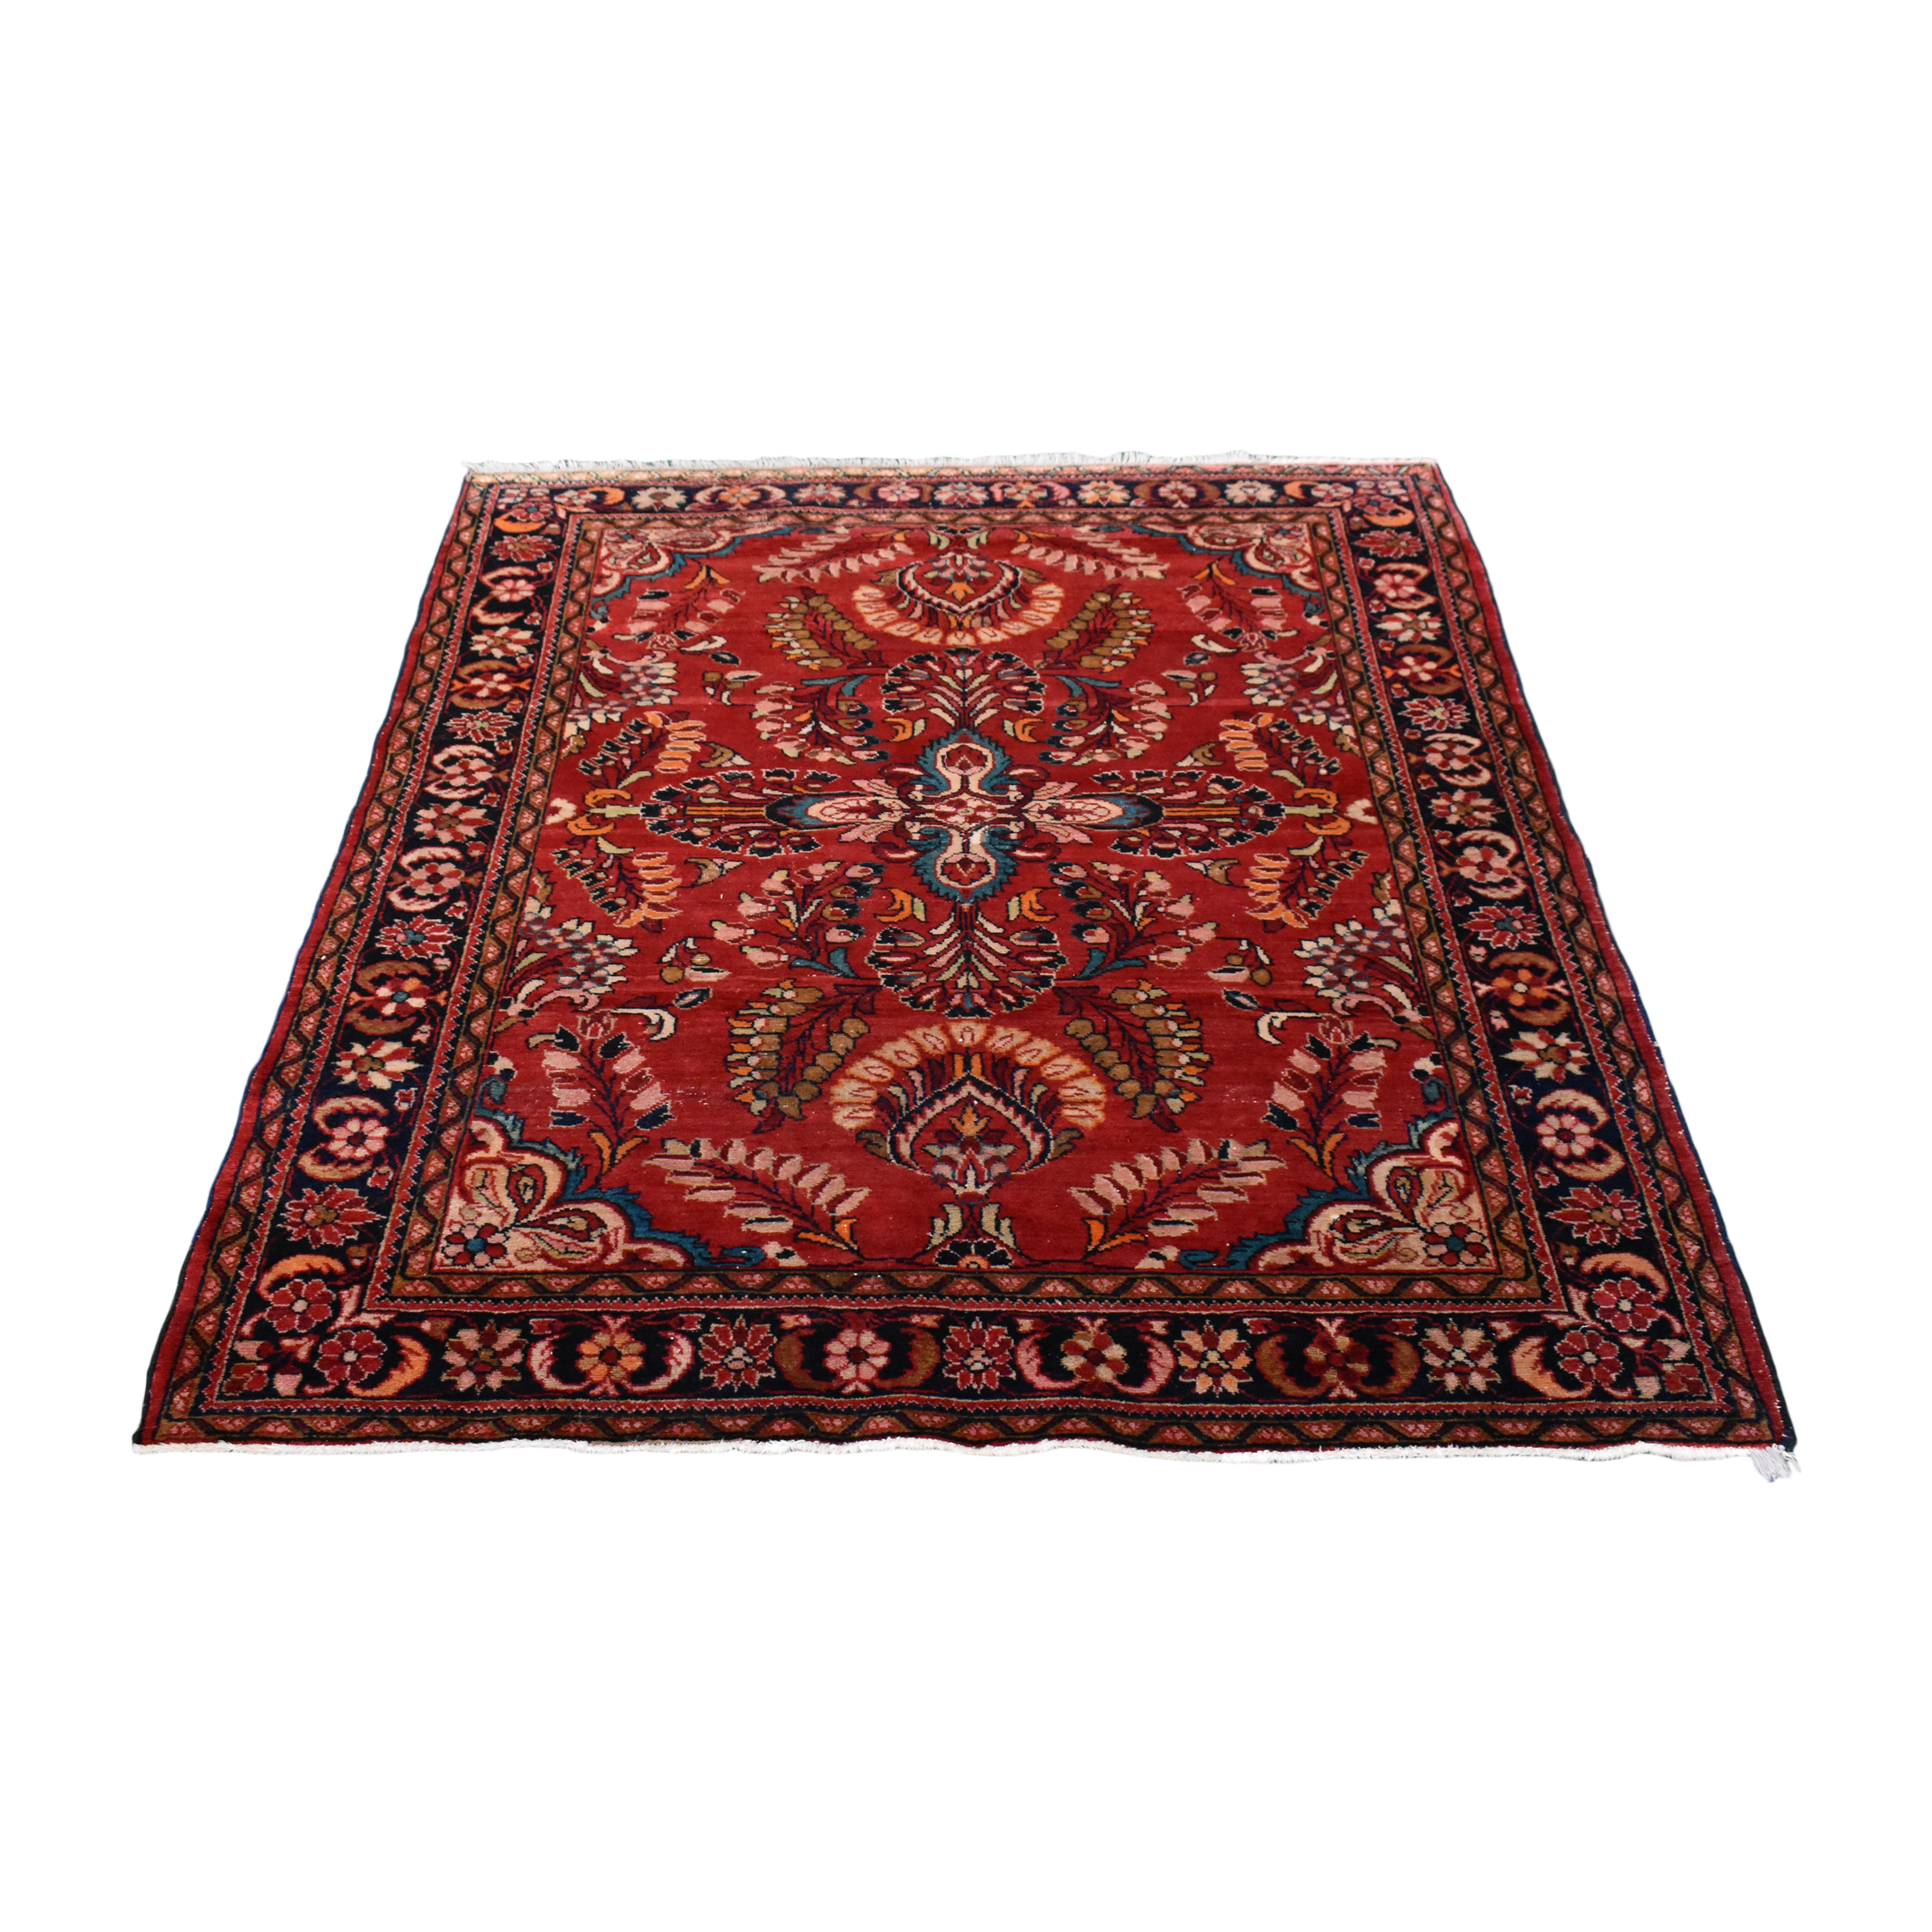 Persian-Style Patterned Area Rug coupon